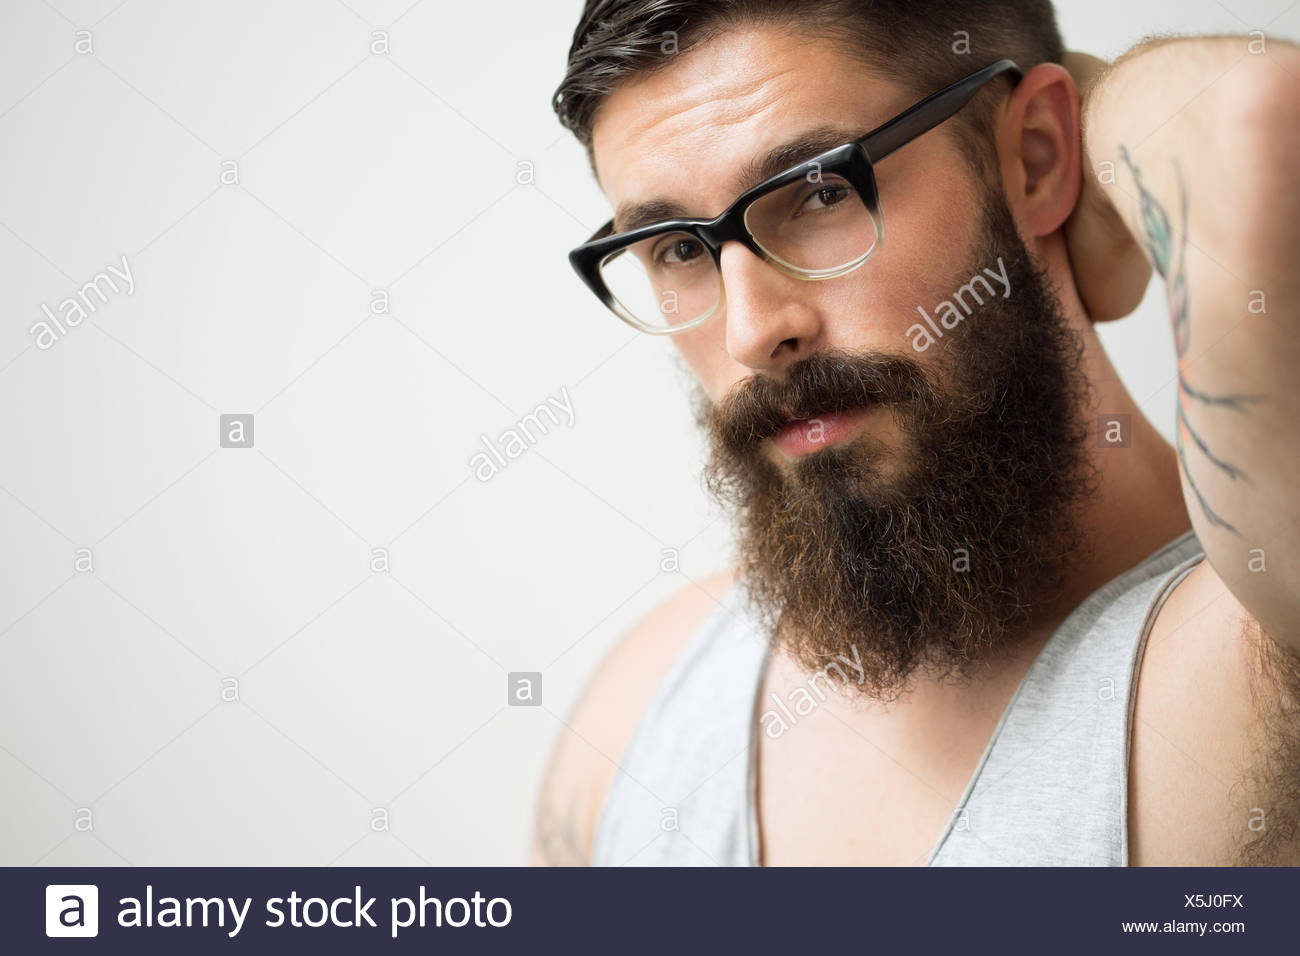 Portrait of brunette man with beard wearing eyeglasses - Stock Image